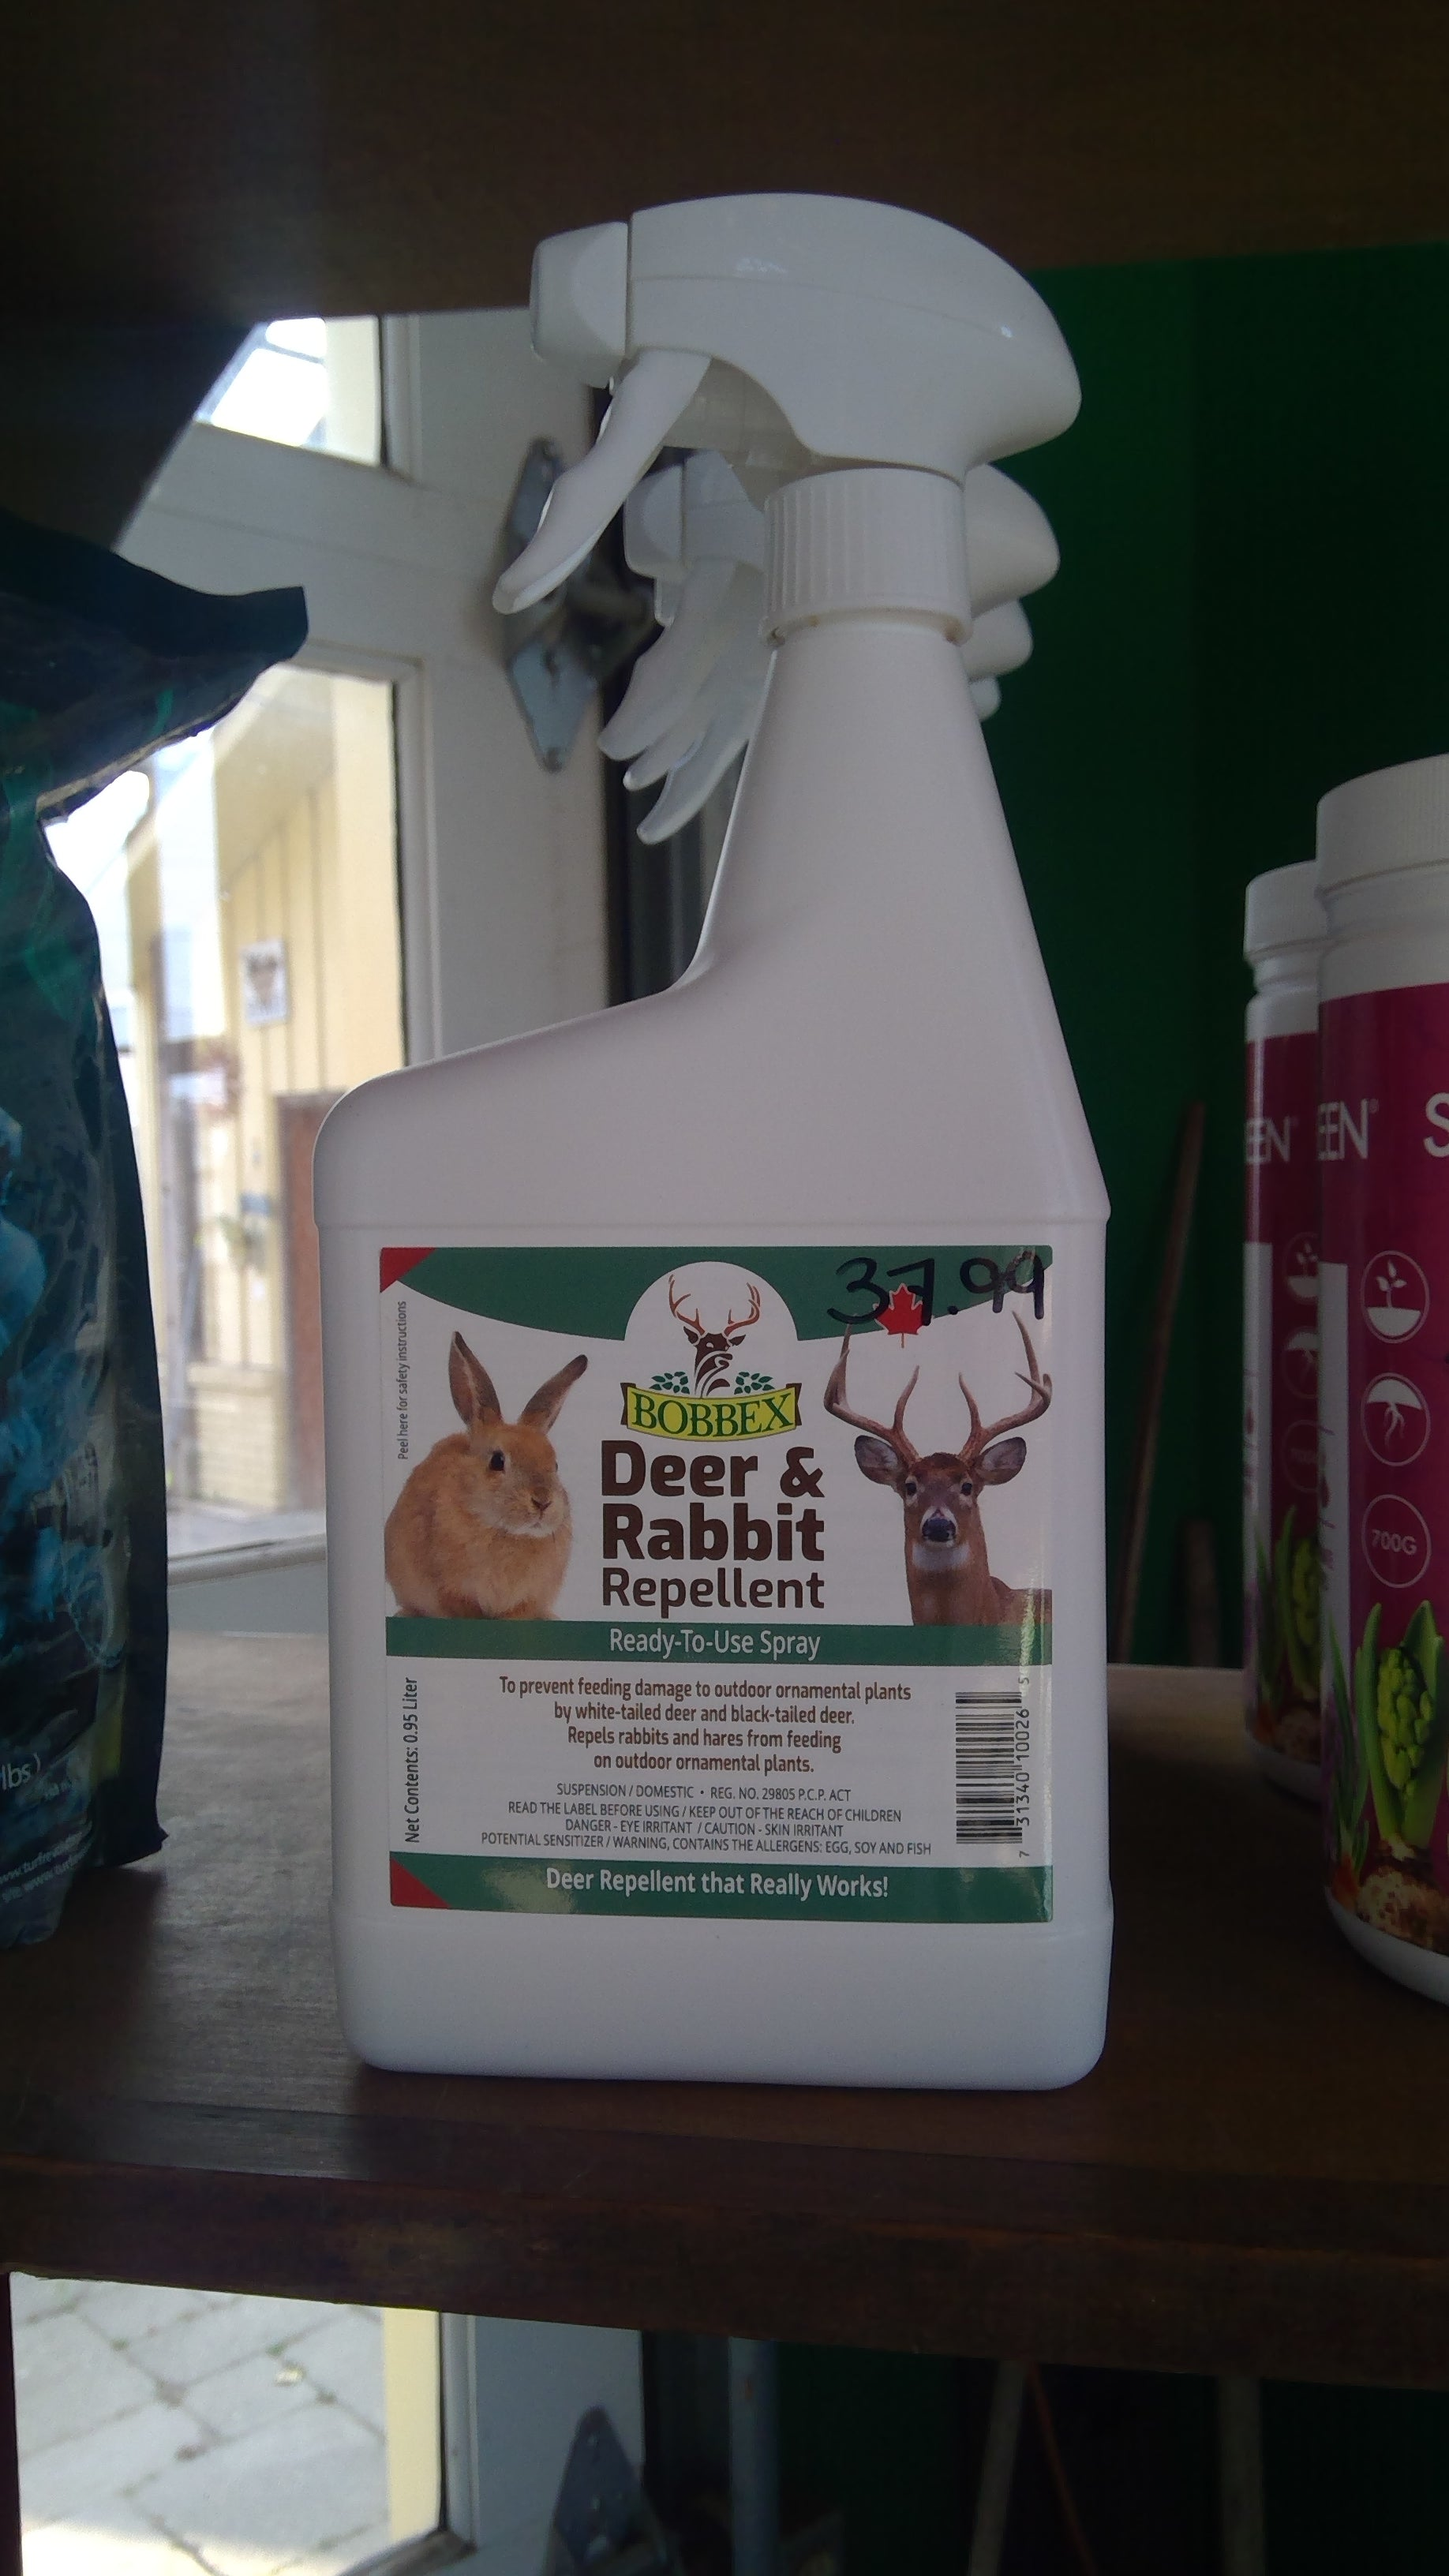 Deer & Rabbit Repellent